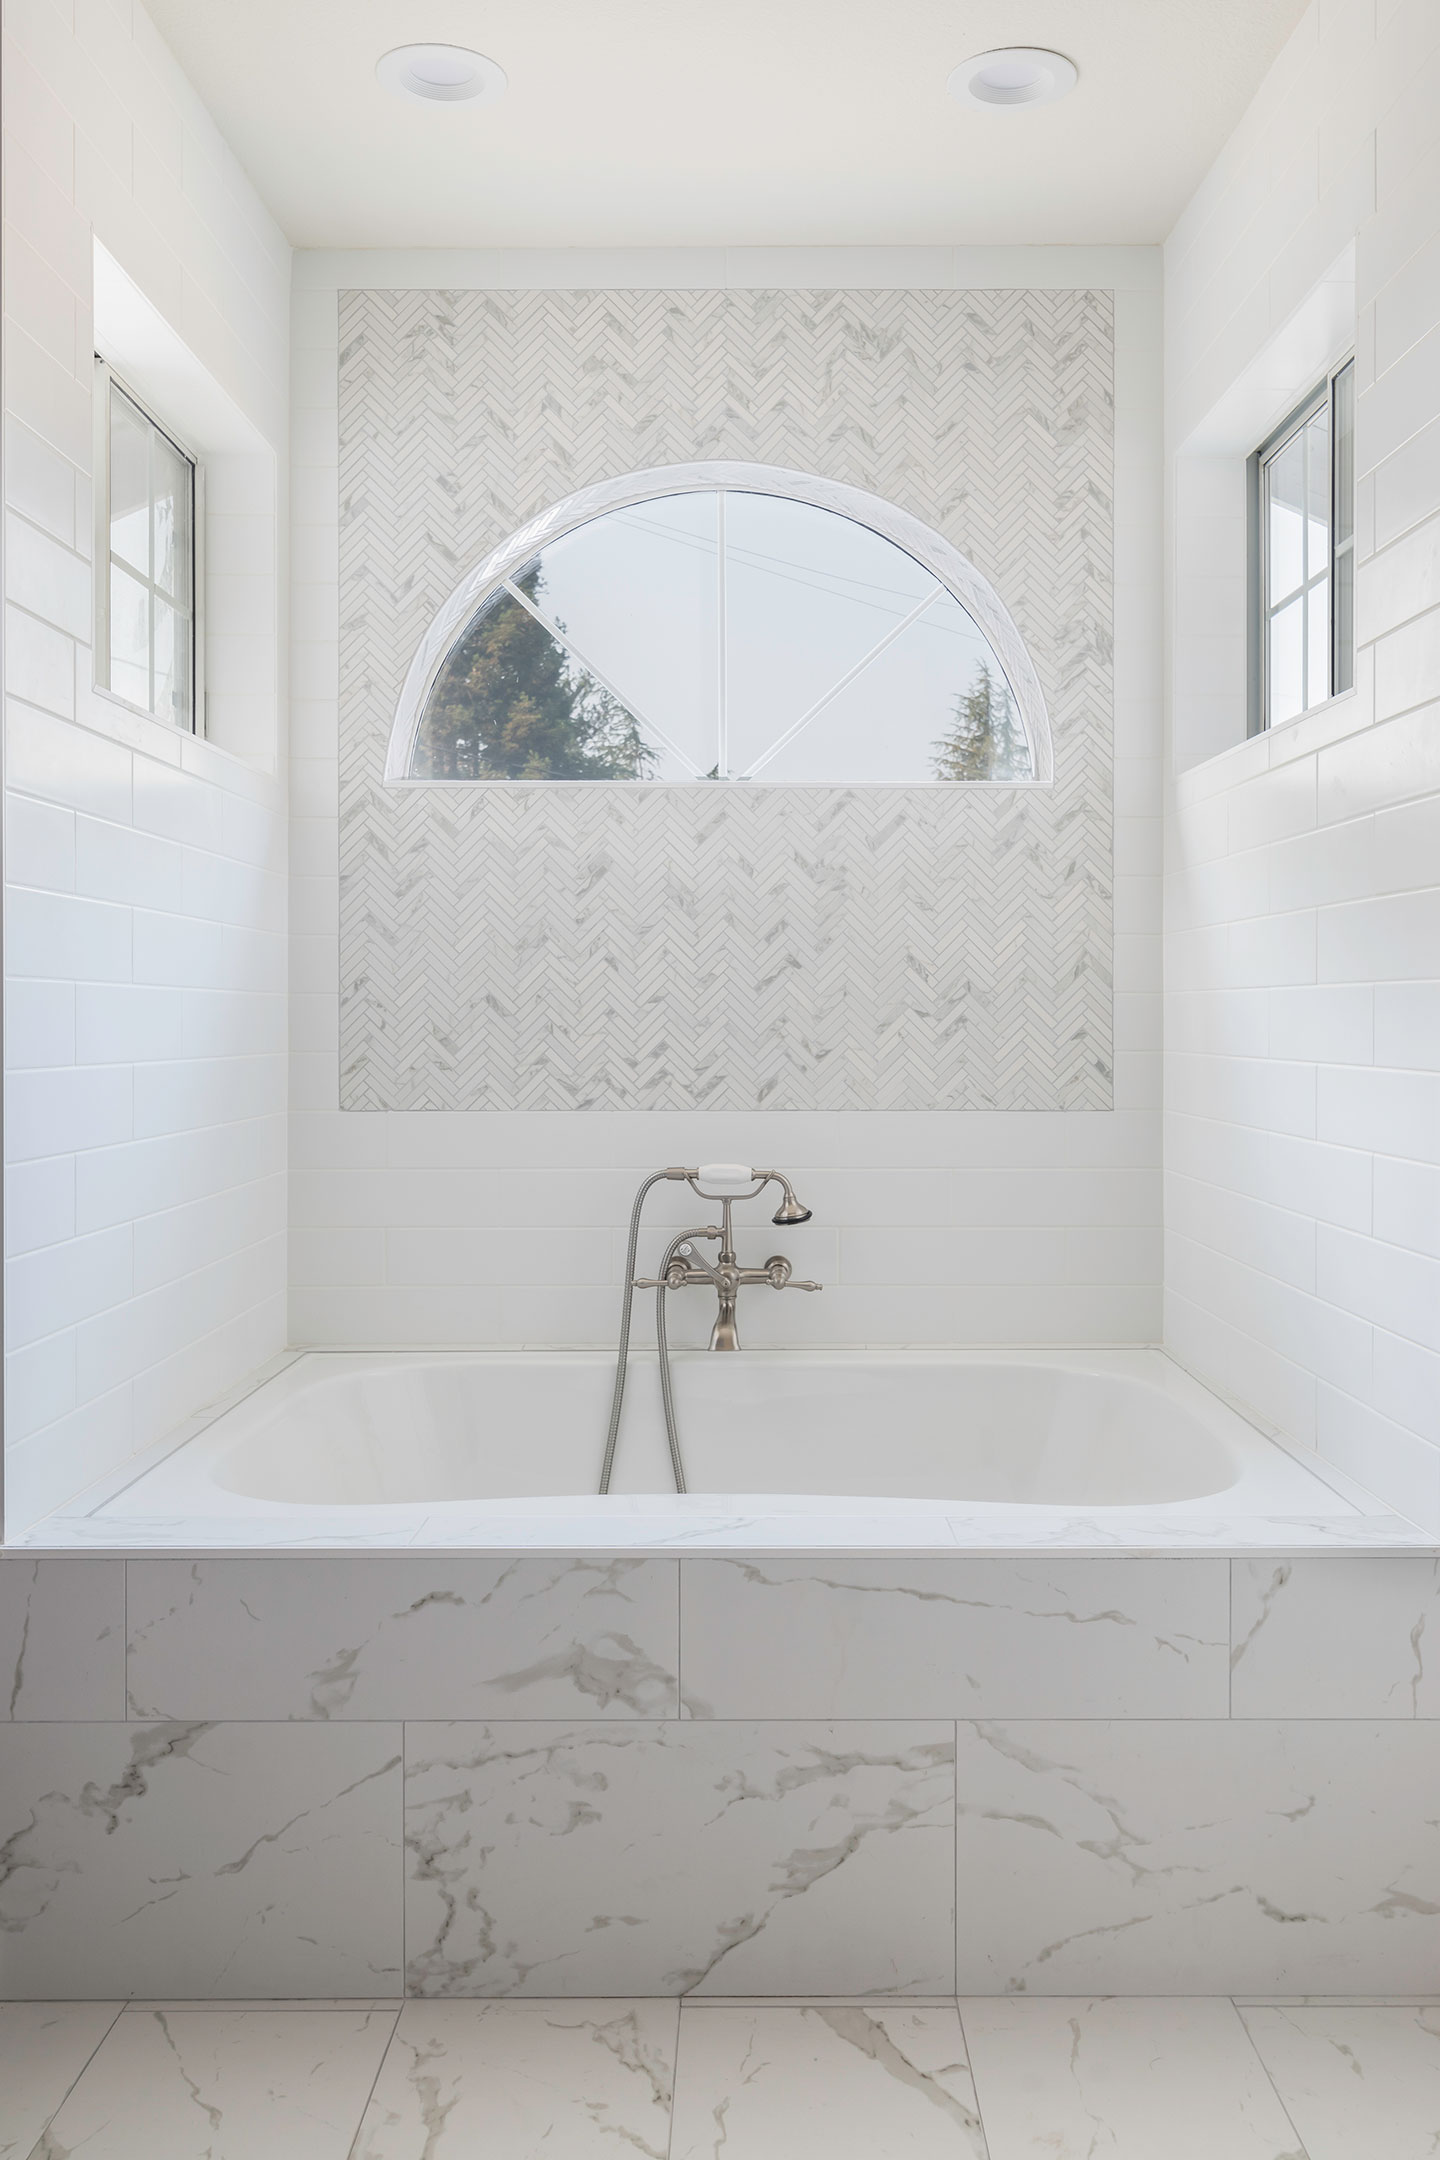 marble drop in bath area with arch window overhead